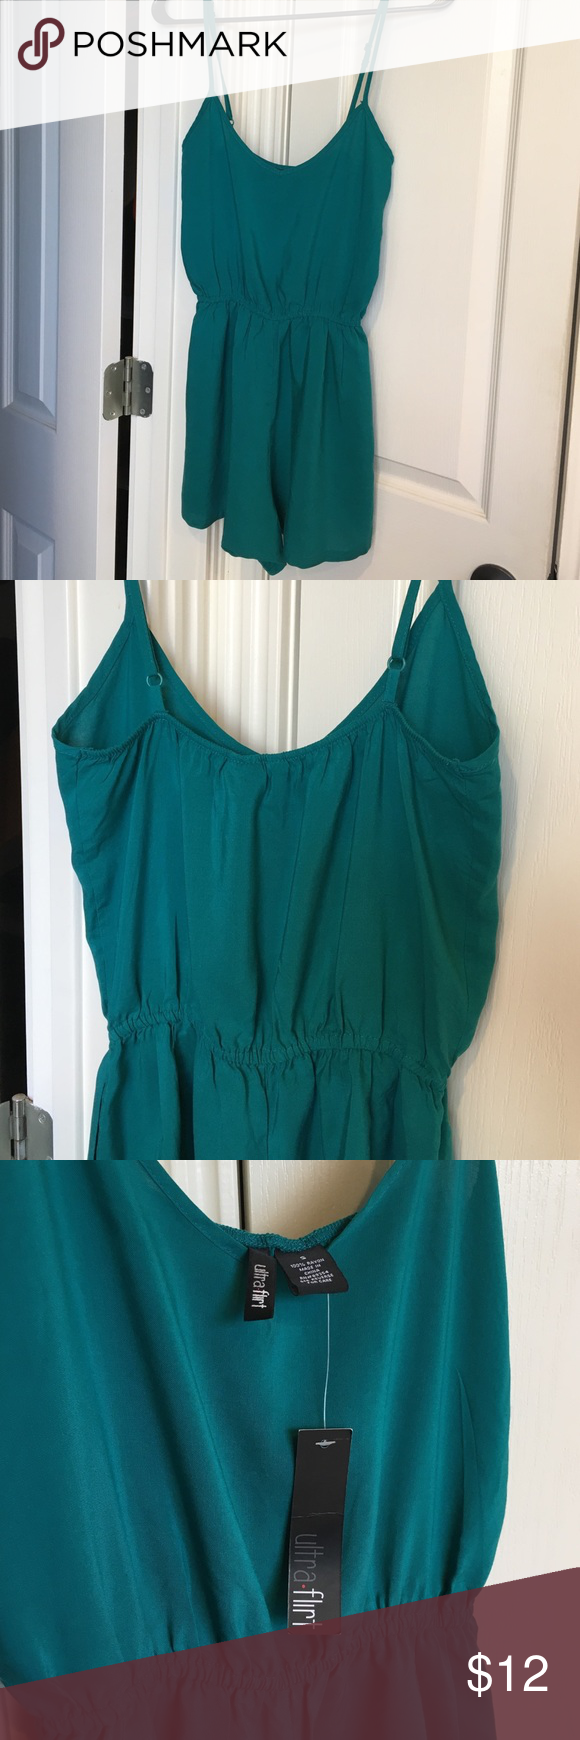 Teal Romper size S NWT! Super cute teal romper size S. Brand NWT. Has hidden side pockets. Brand is Ultra Flirt. Ultra Flirt Pants Jumpsuits & Rompers